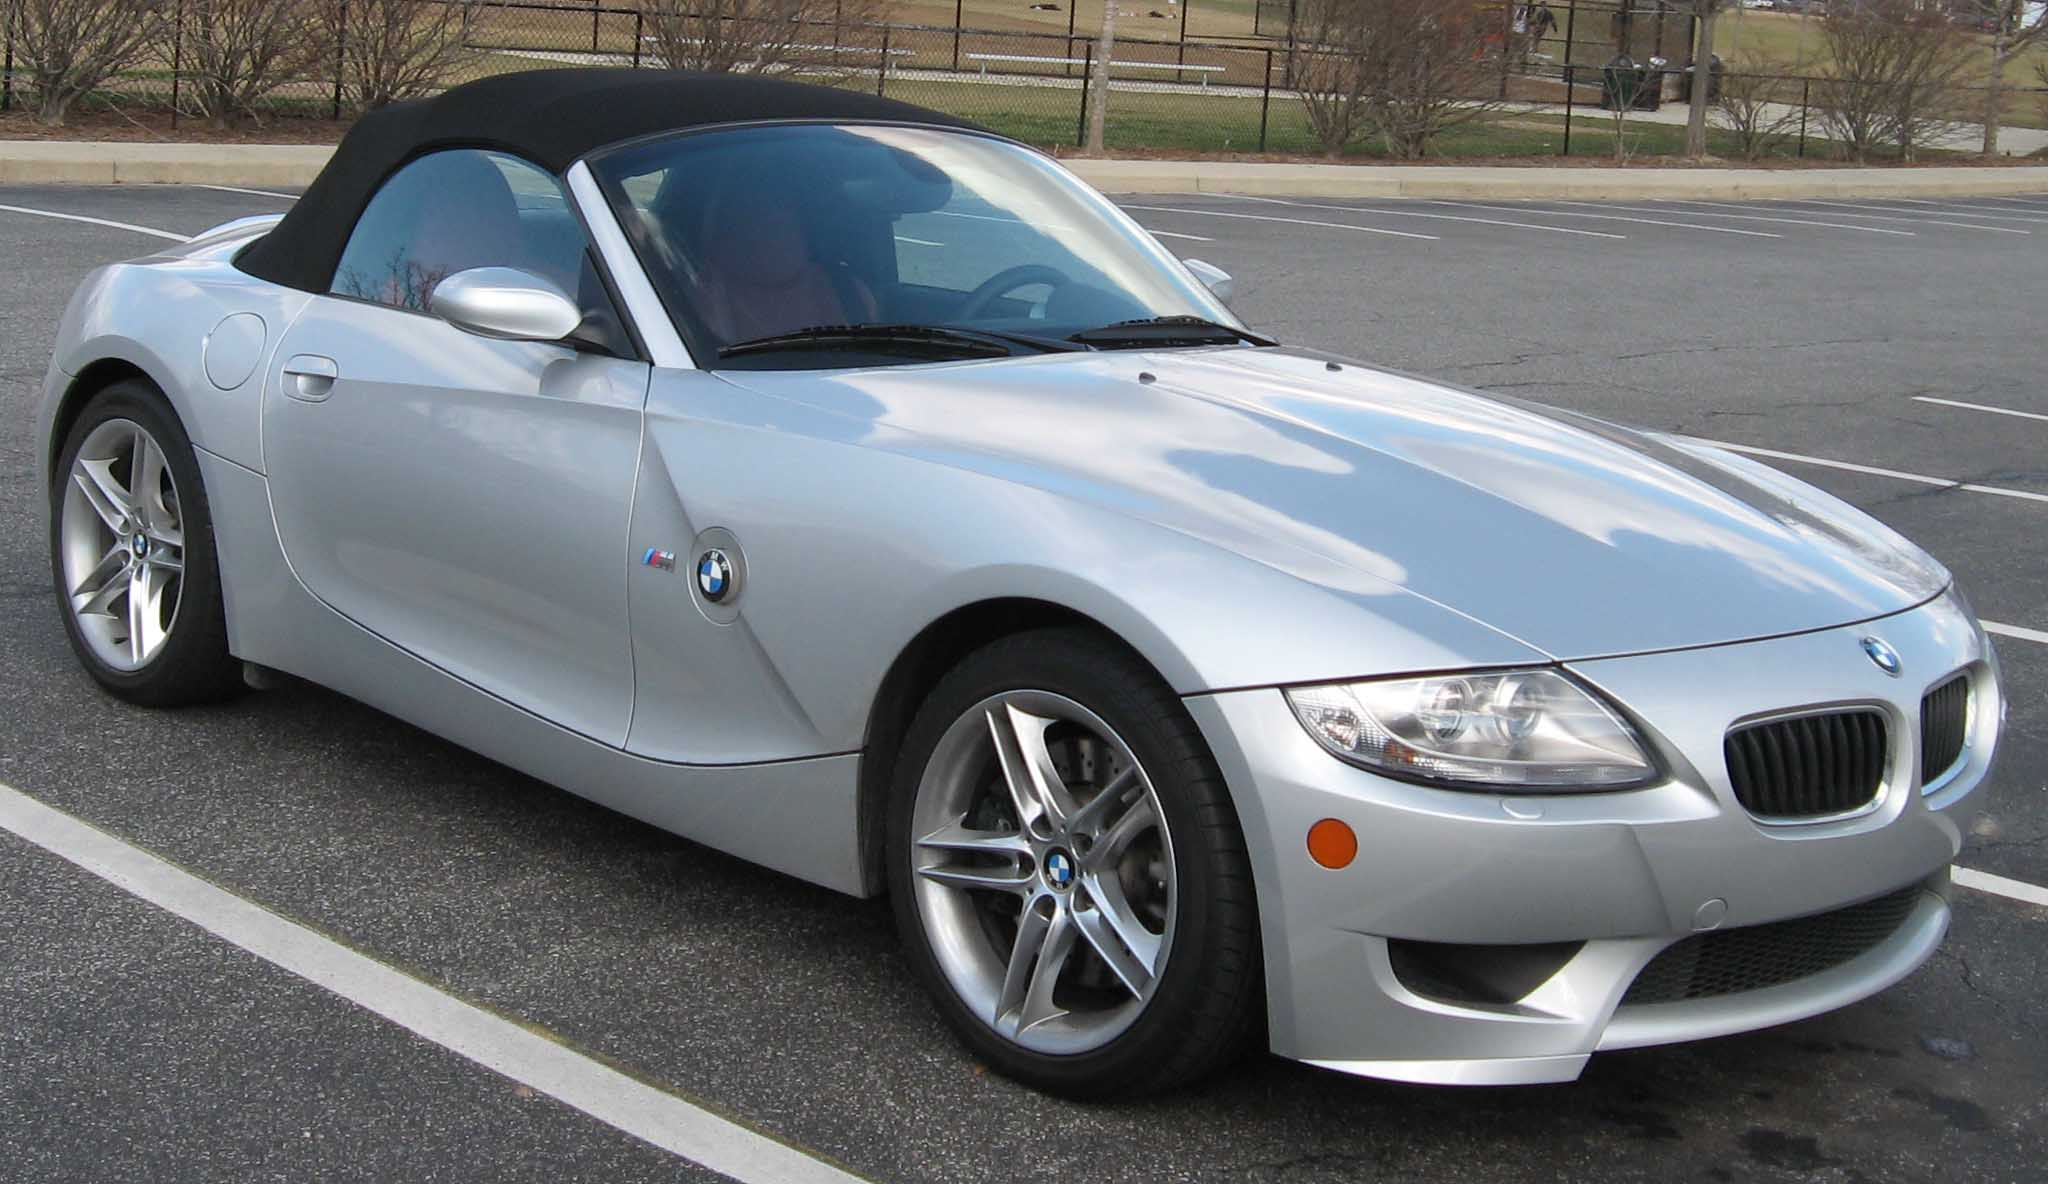 File:BMW Z4 M 1.jpg - Wikimedia Commons